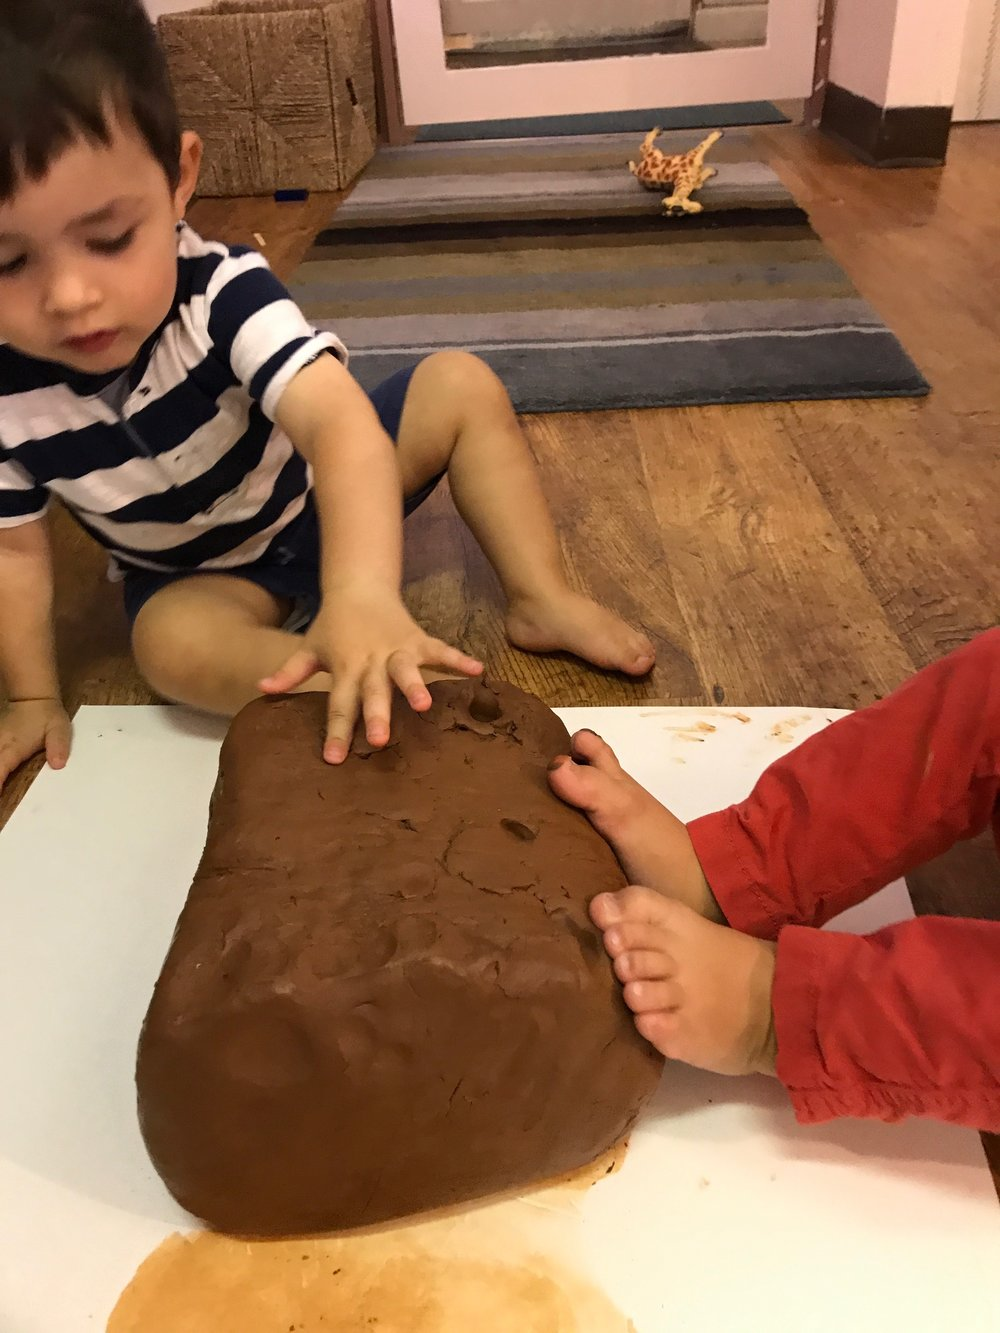 This week we used our whole bodies and especially feet to explore clay. We did a lot of pounding and pulling because we wanted to lift the clay off the paper. Lots of grunting and effort were involved in the process. We were super proud of our dedicated workers.